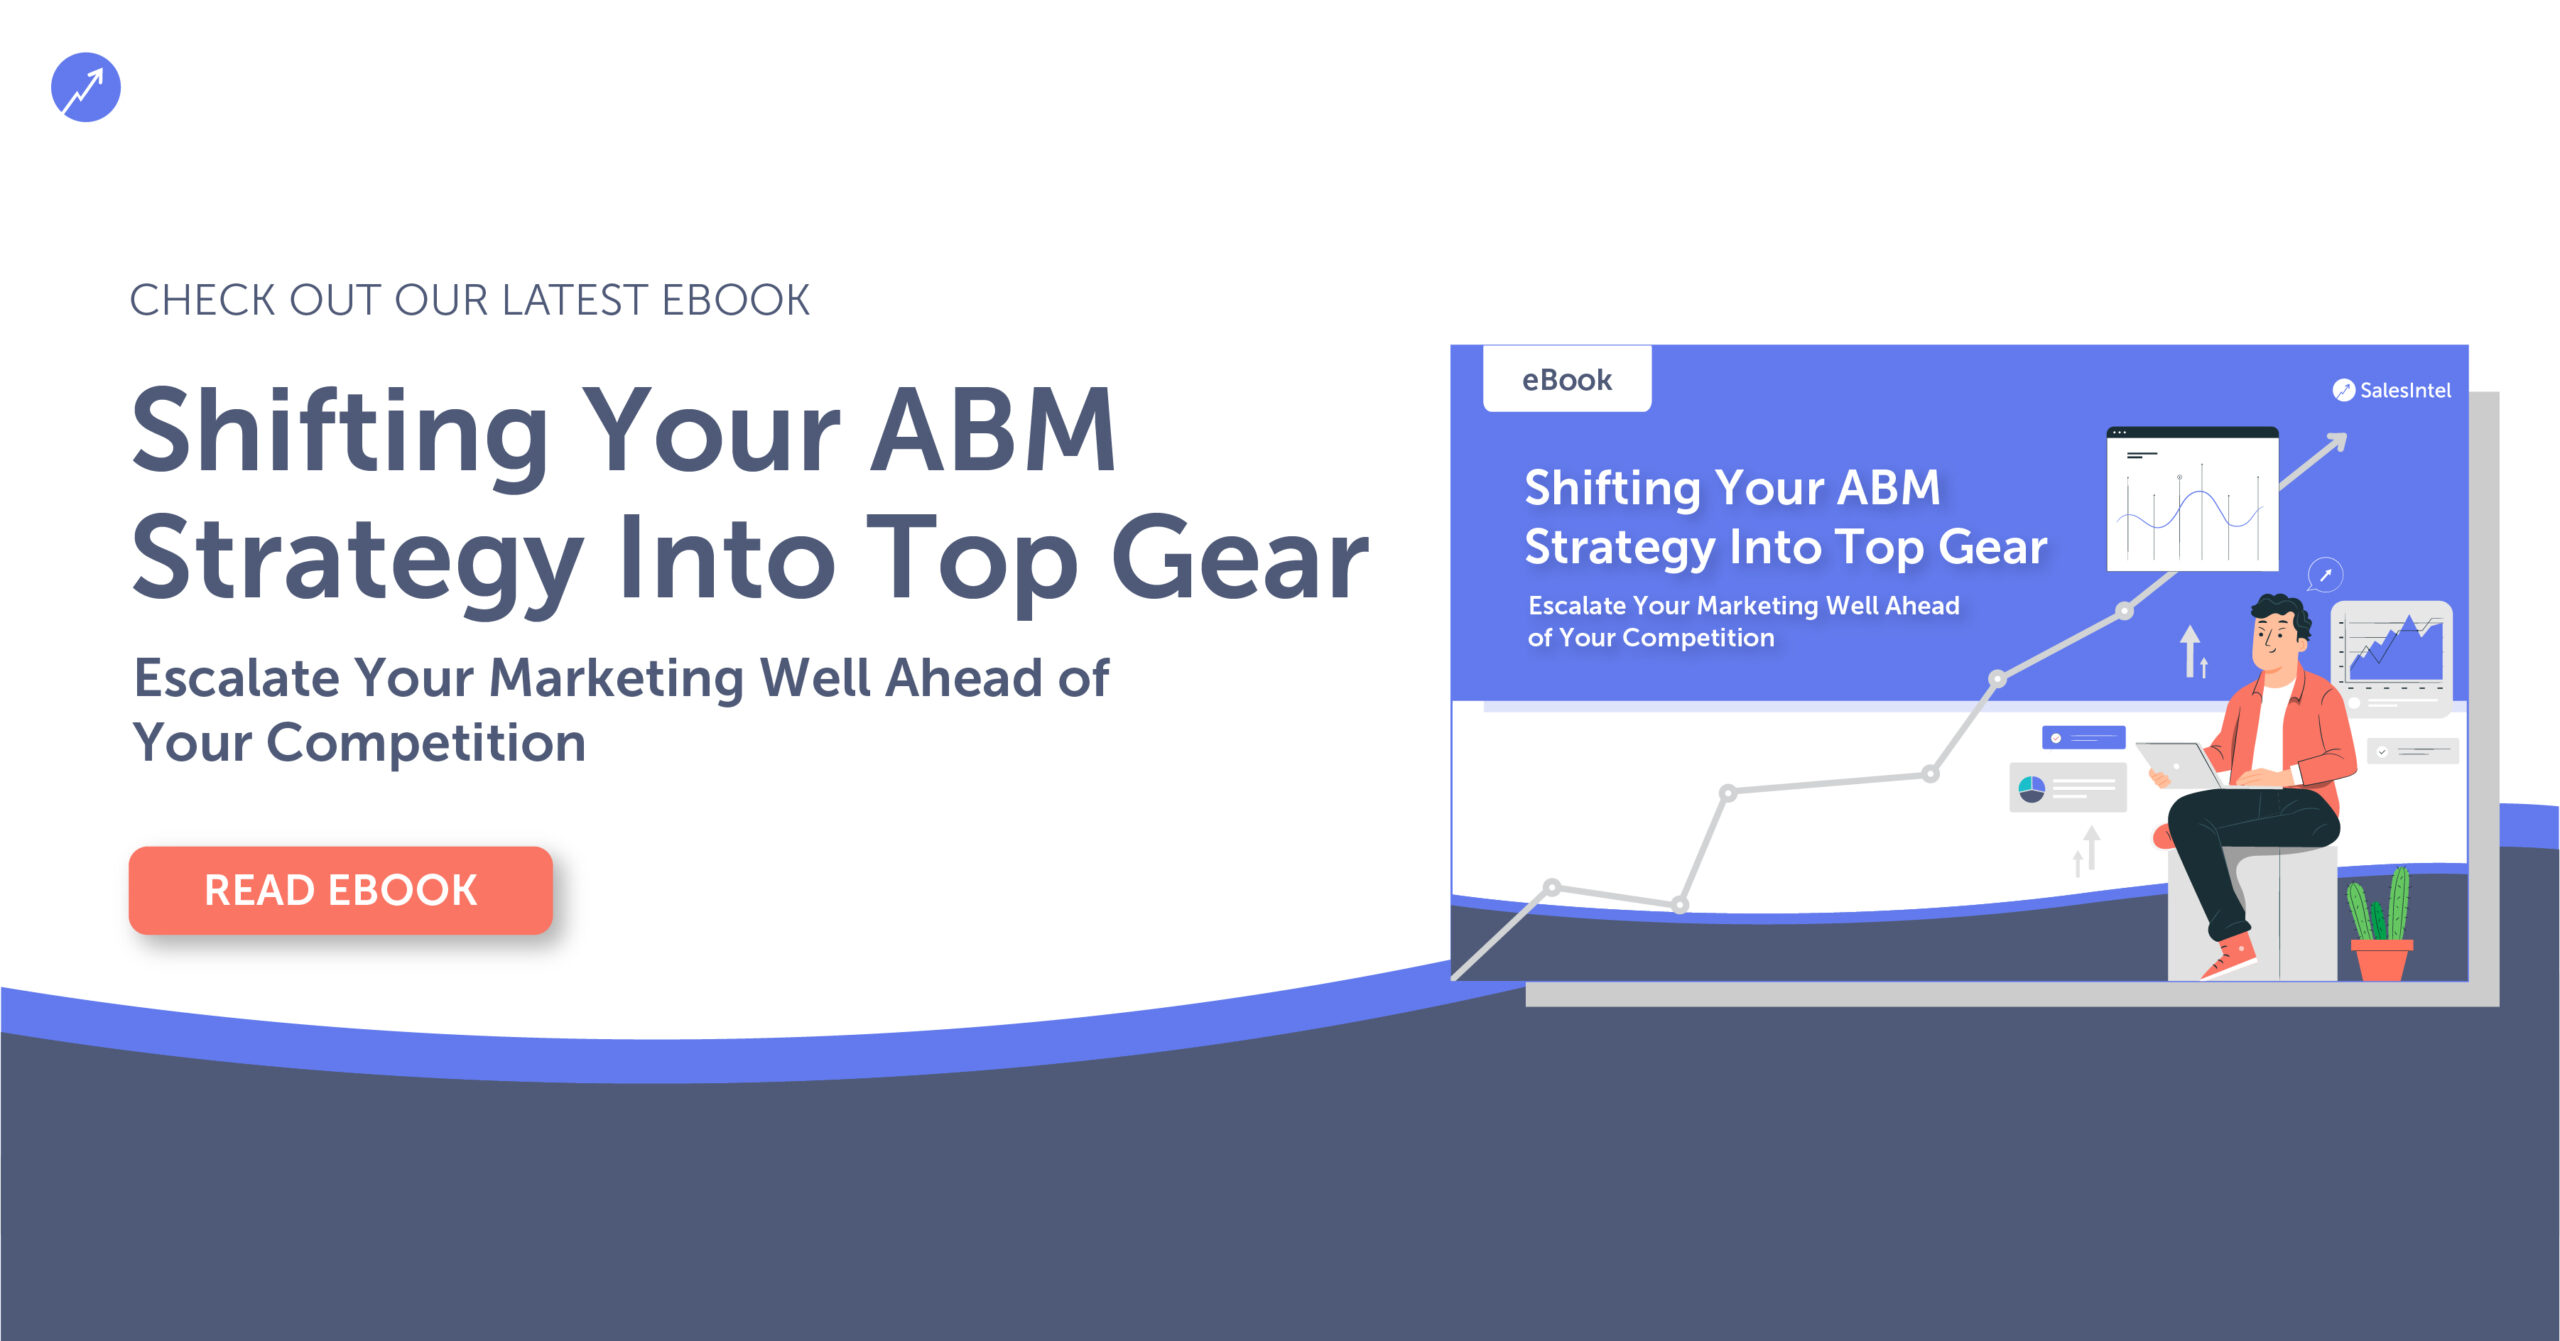 Ebook: Shifting Your ABM Strategy Into Top Gear